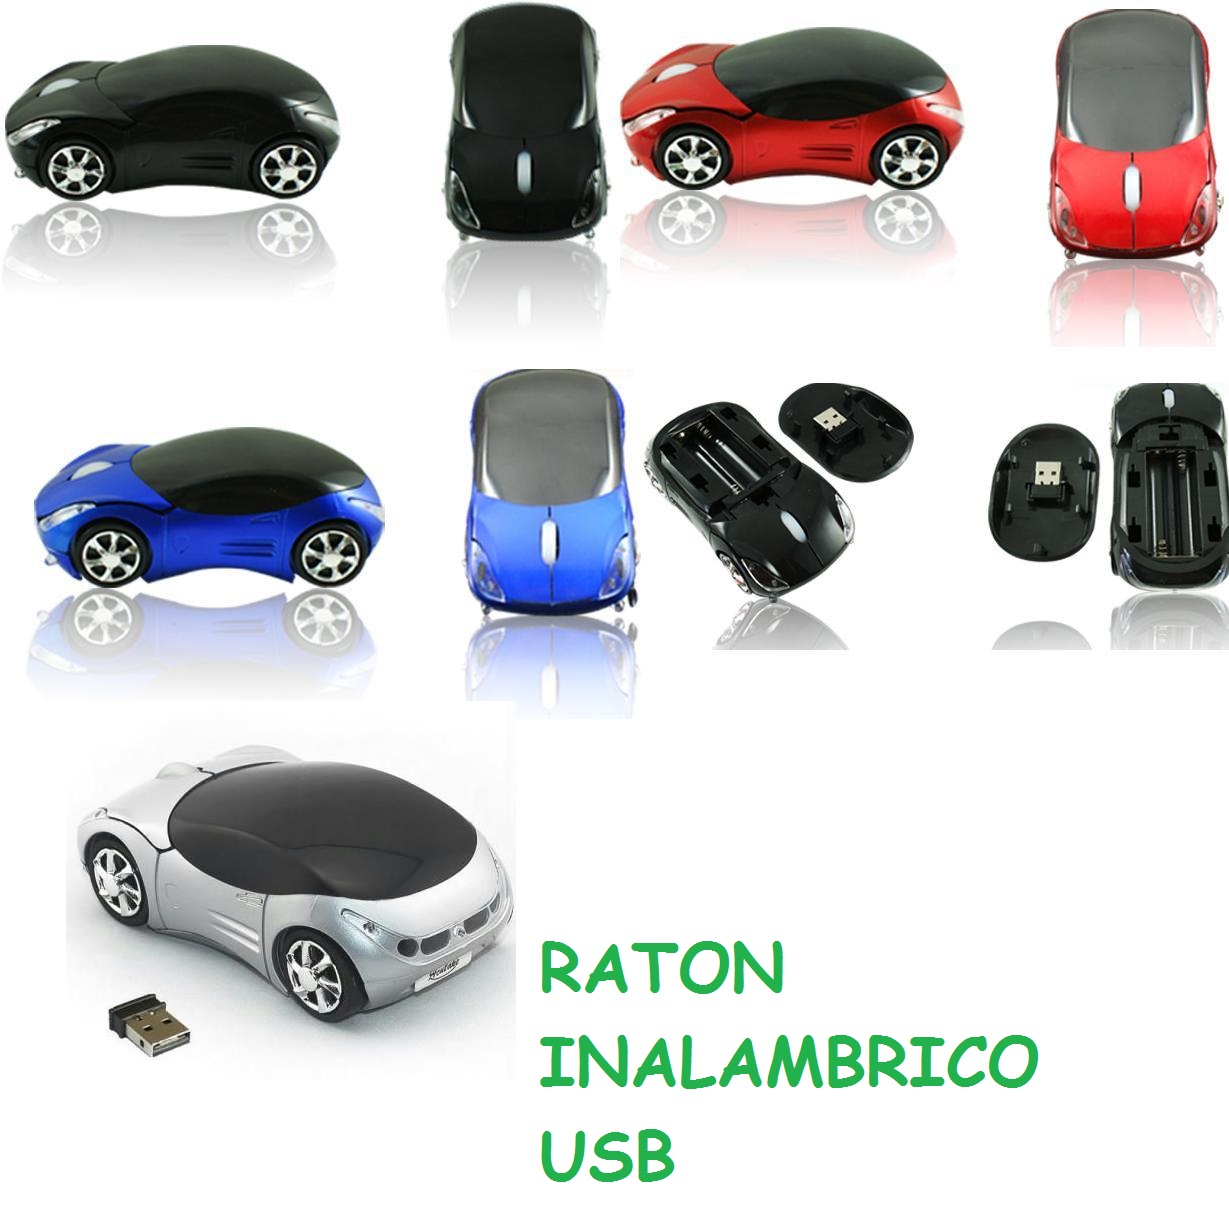 raton usb inalambrico sin cables con forma de coche de colores para windows linux mac android pc ordenador tablet 2 botones y rueda